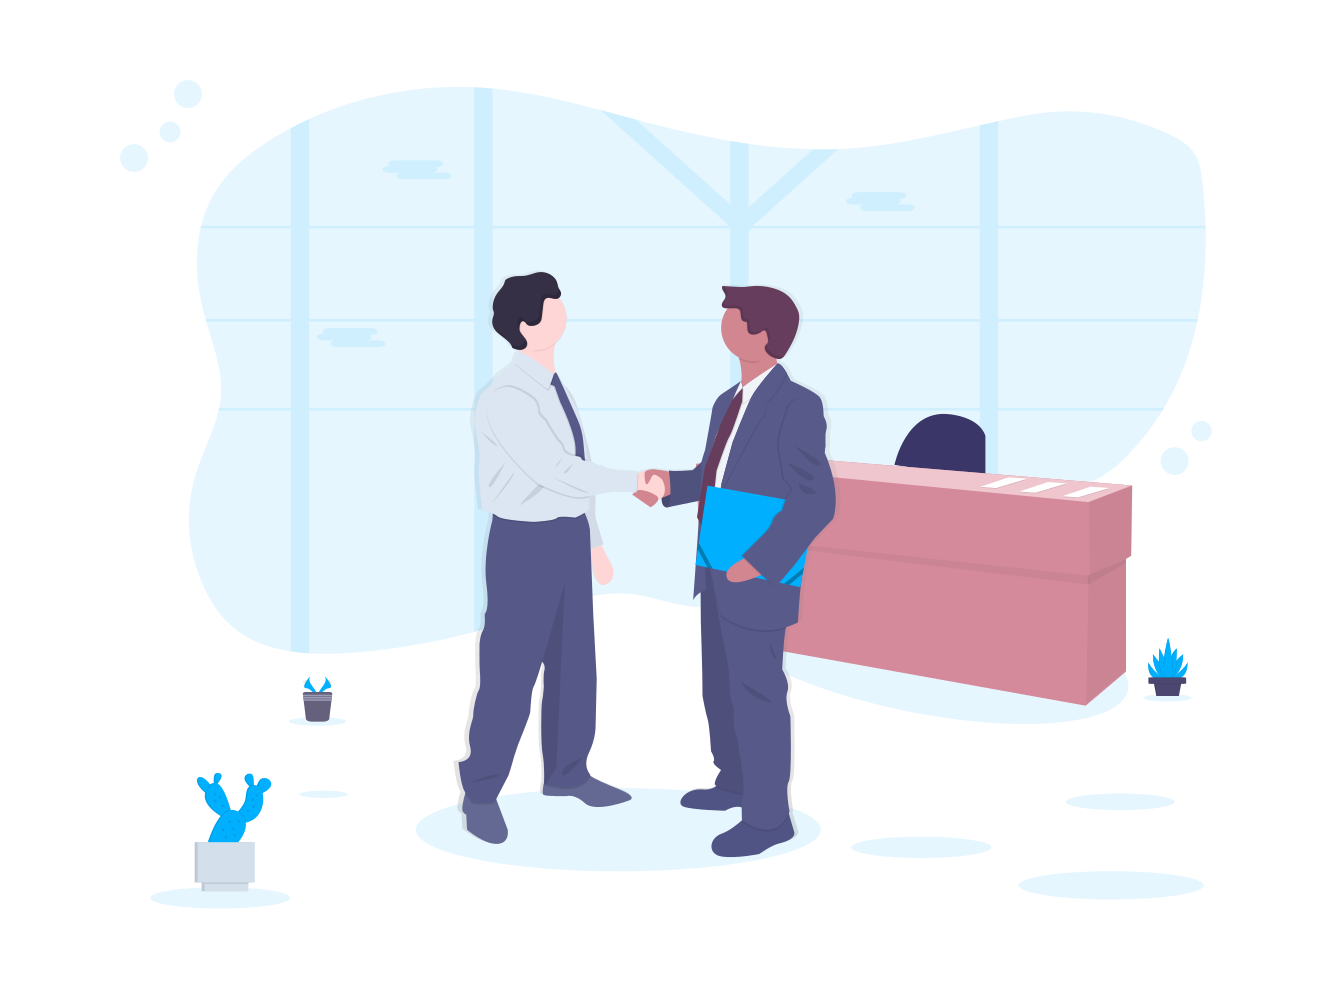 Image displaying cartoon drawing of 2 people shaking hands in business meeting